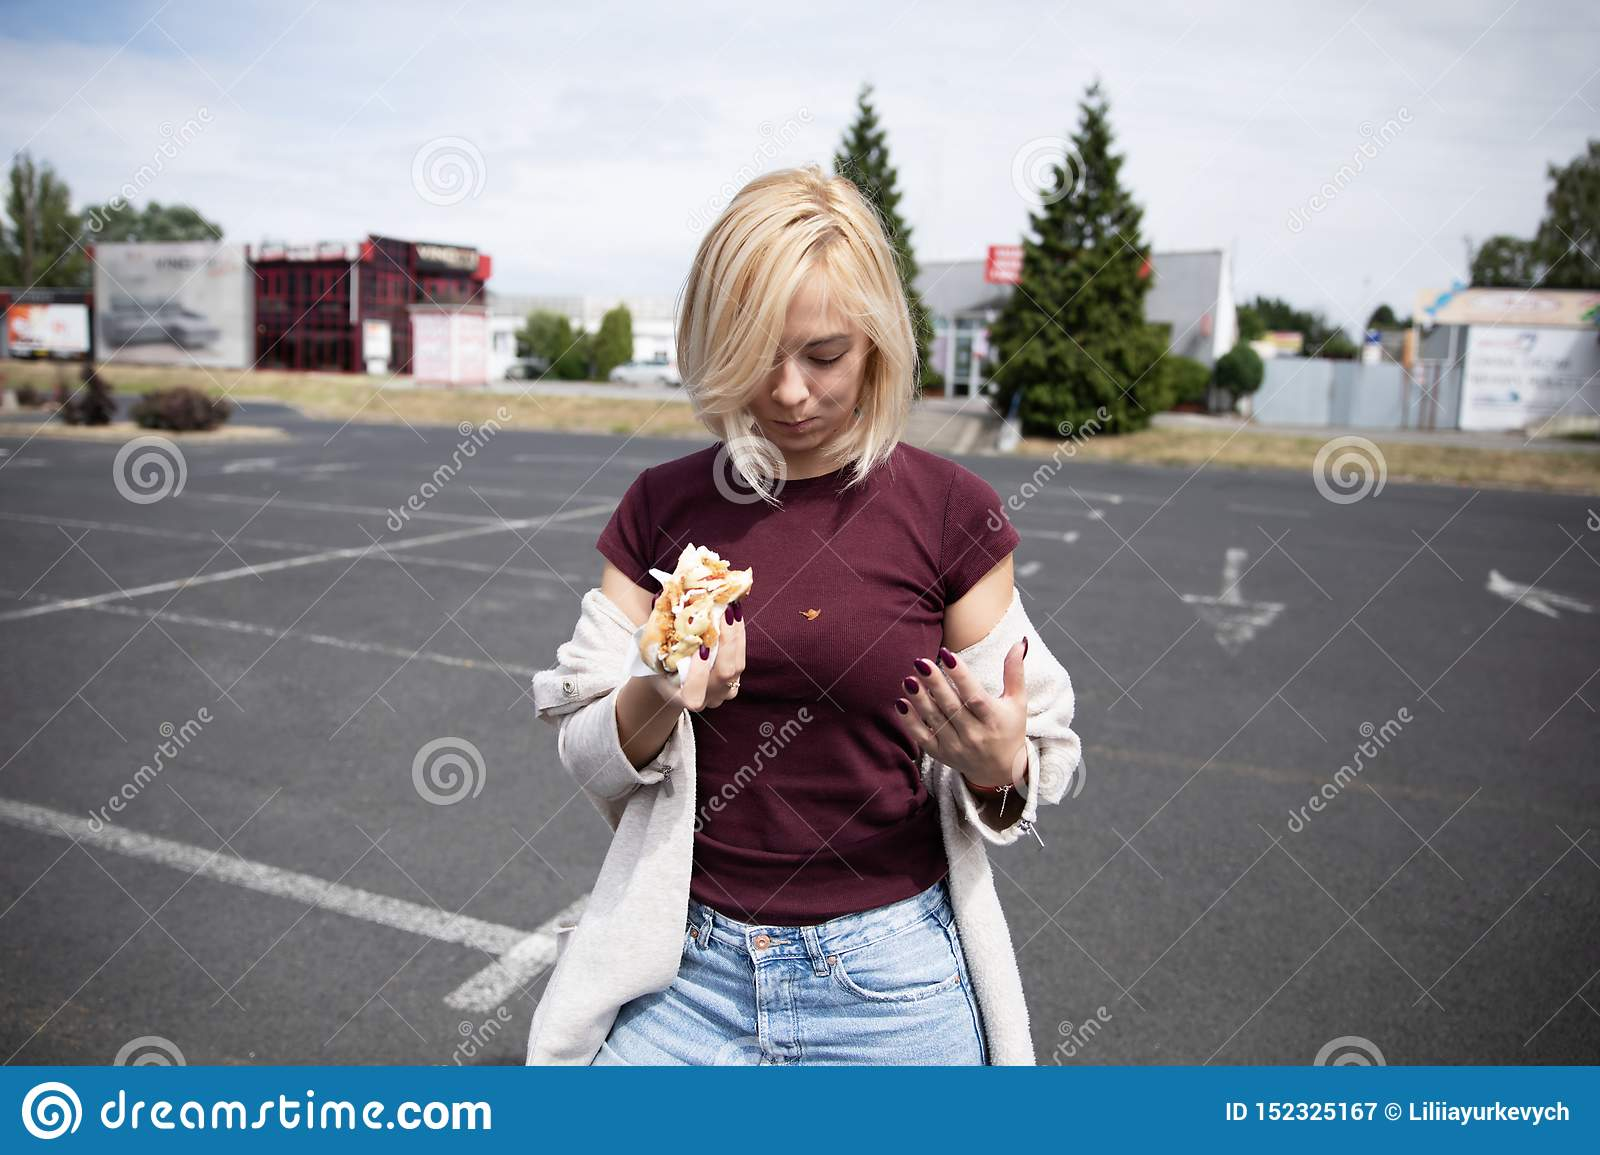 A young woman holds a bitten hot dog